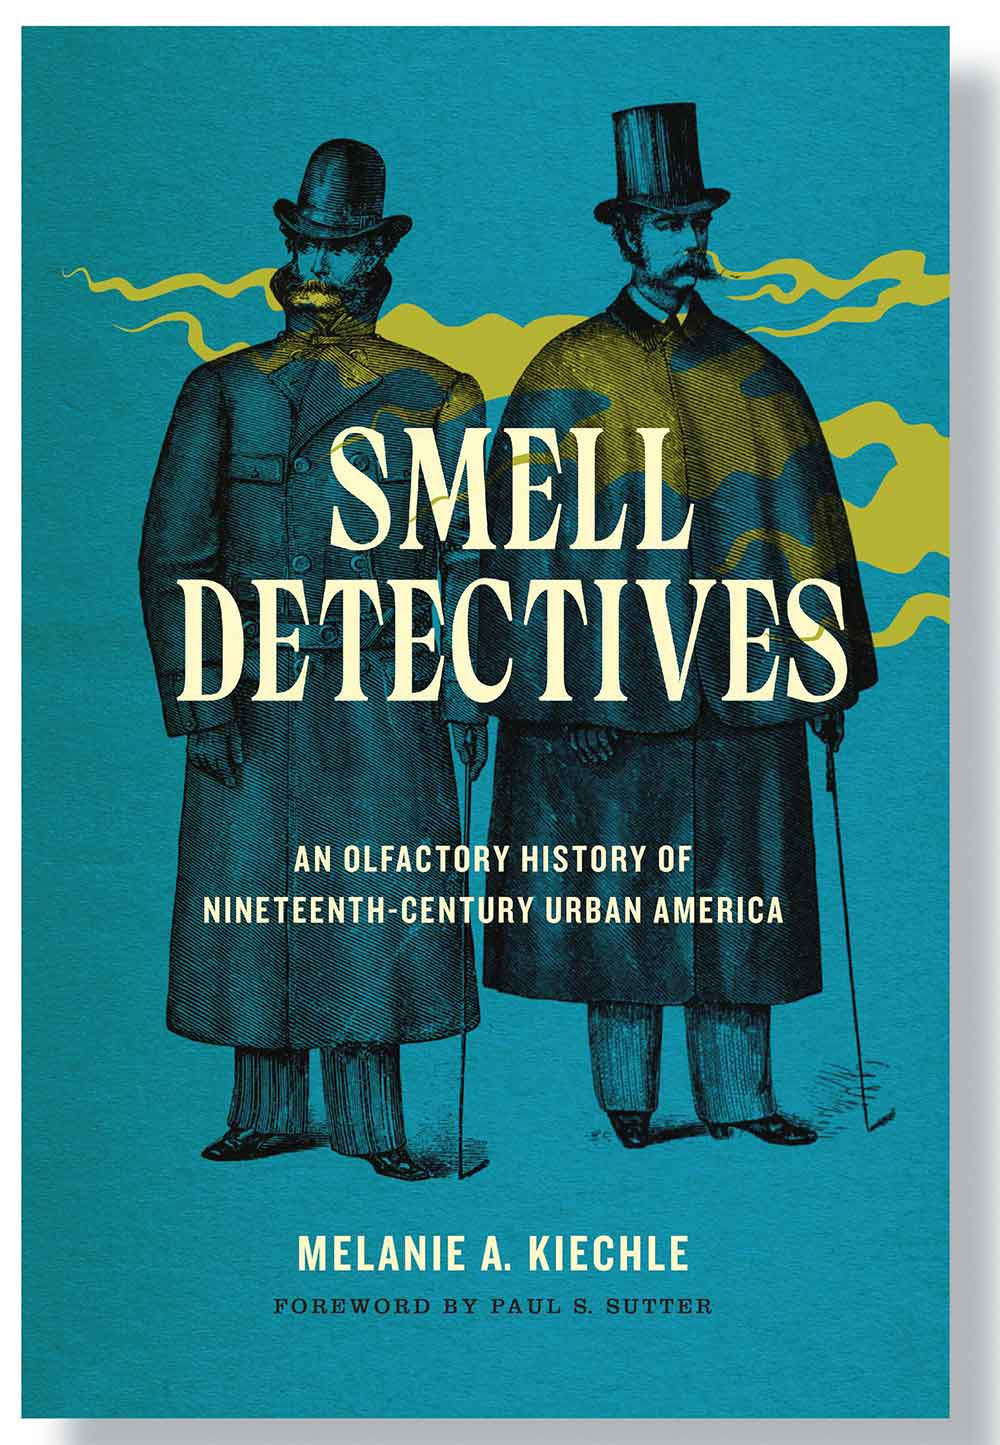 Smell Detectives: An Olfactory History of Nineteenth-Century Urban America – Melanie A. Kiechle